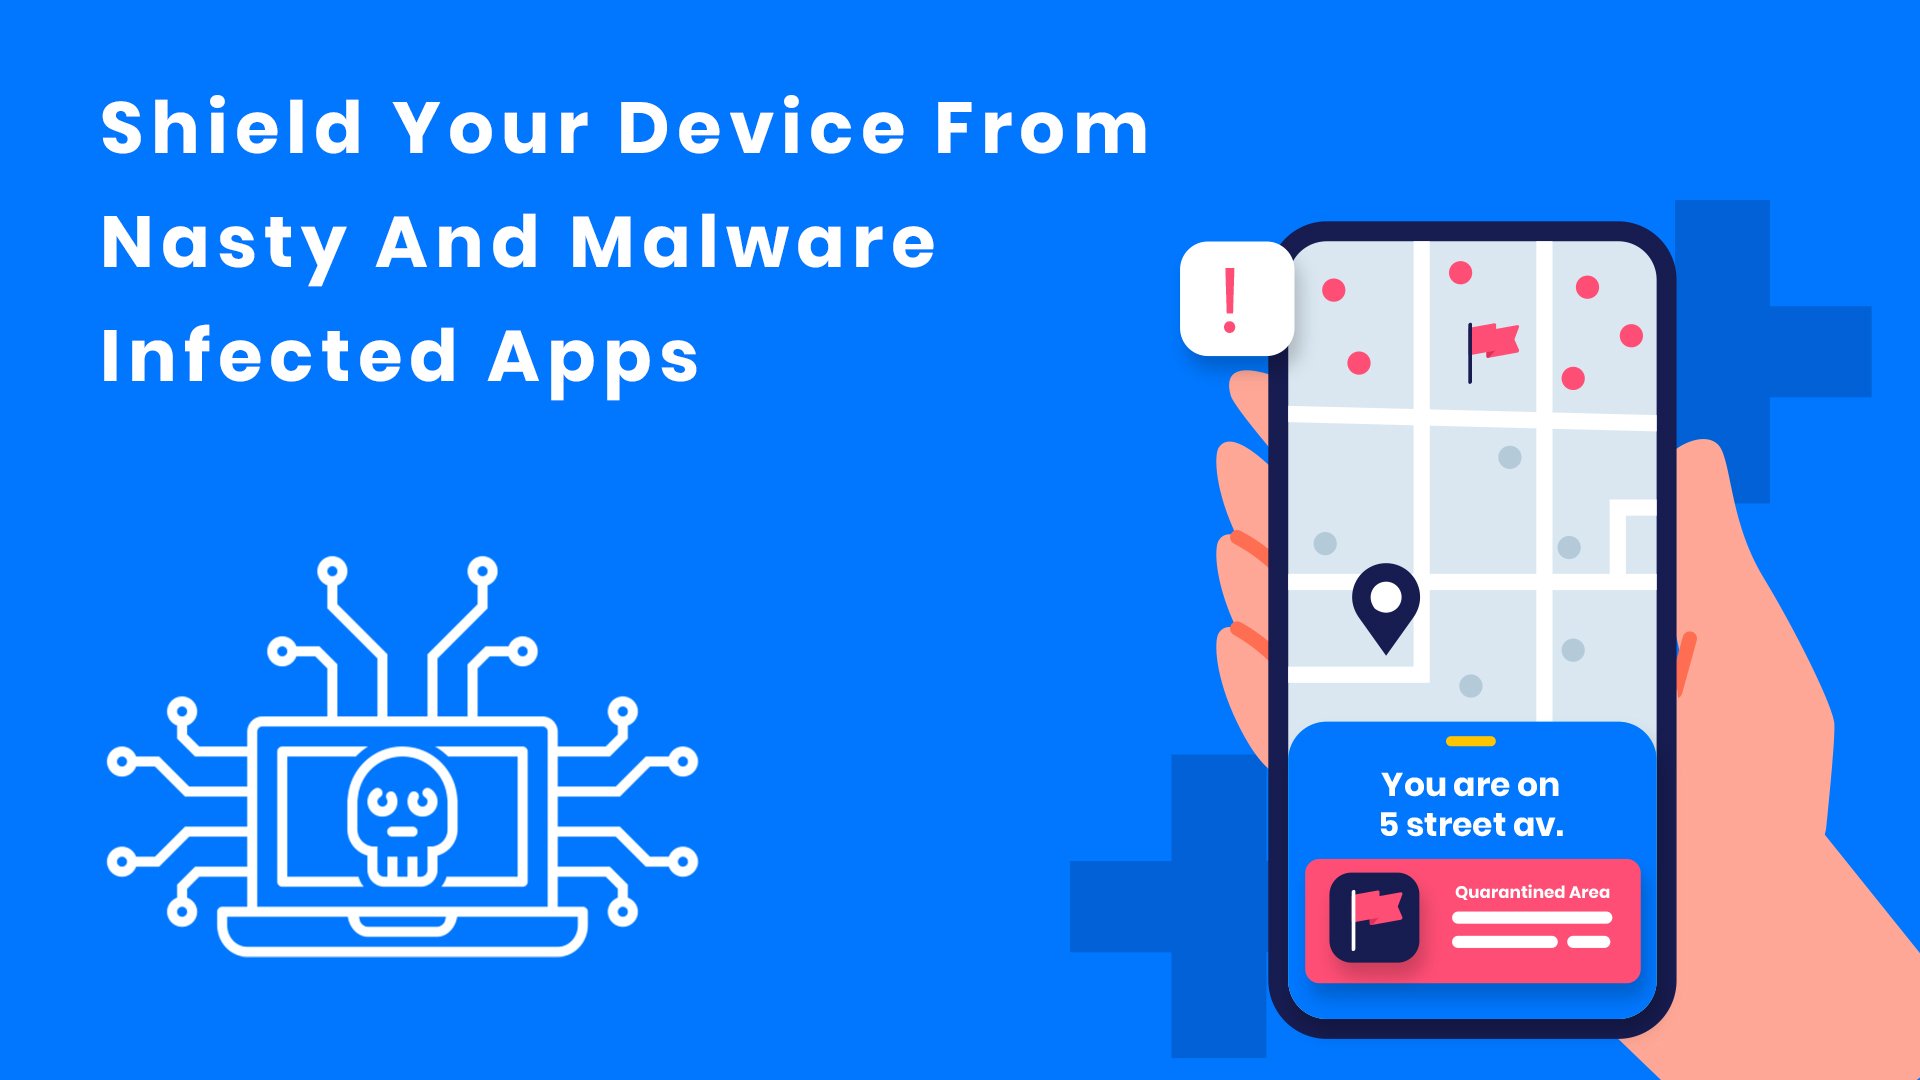 How To Shield Your Device From Nasty And Malware Infected Apps